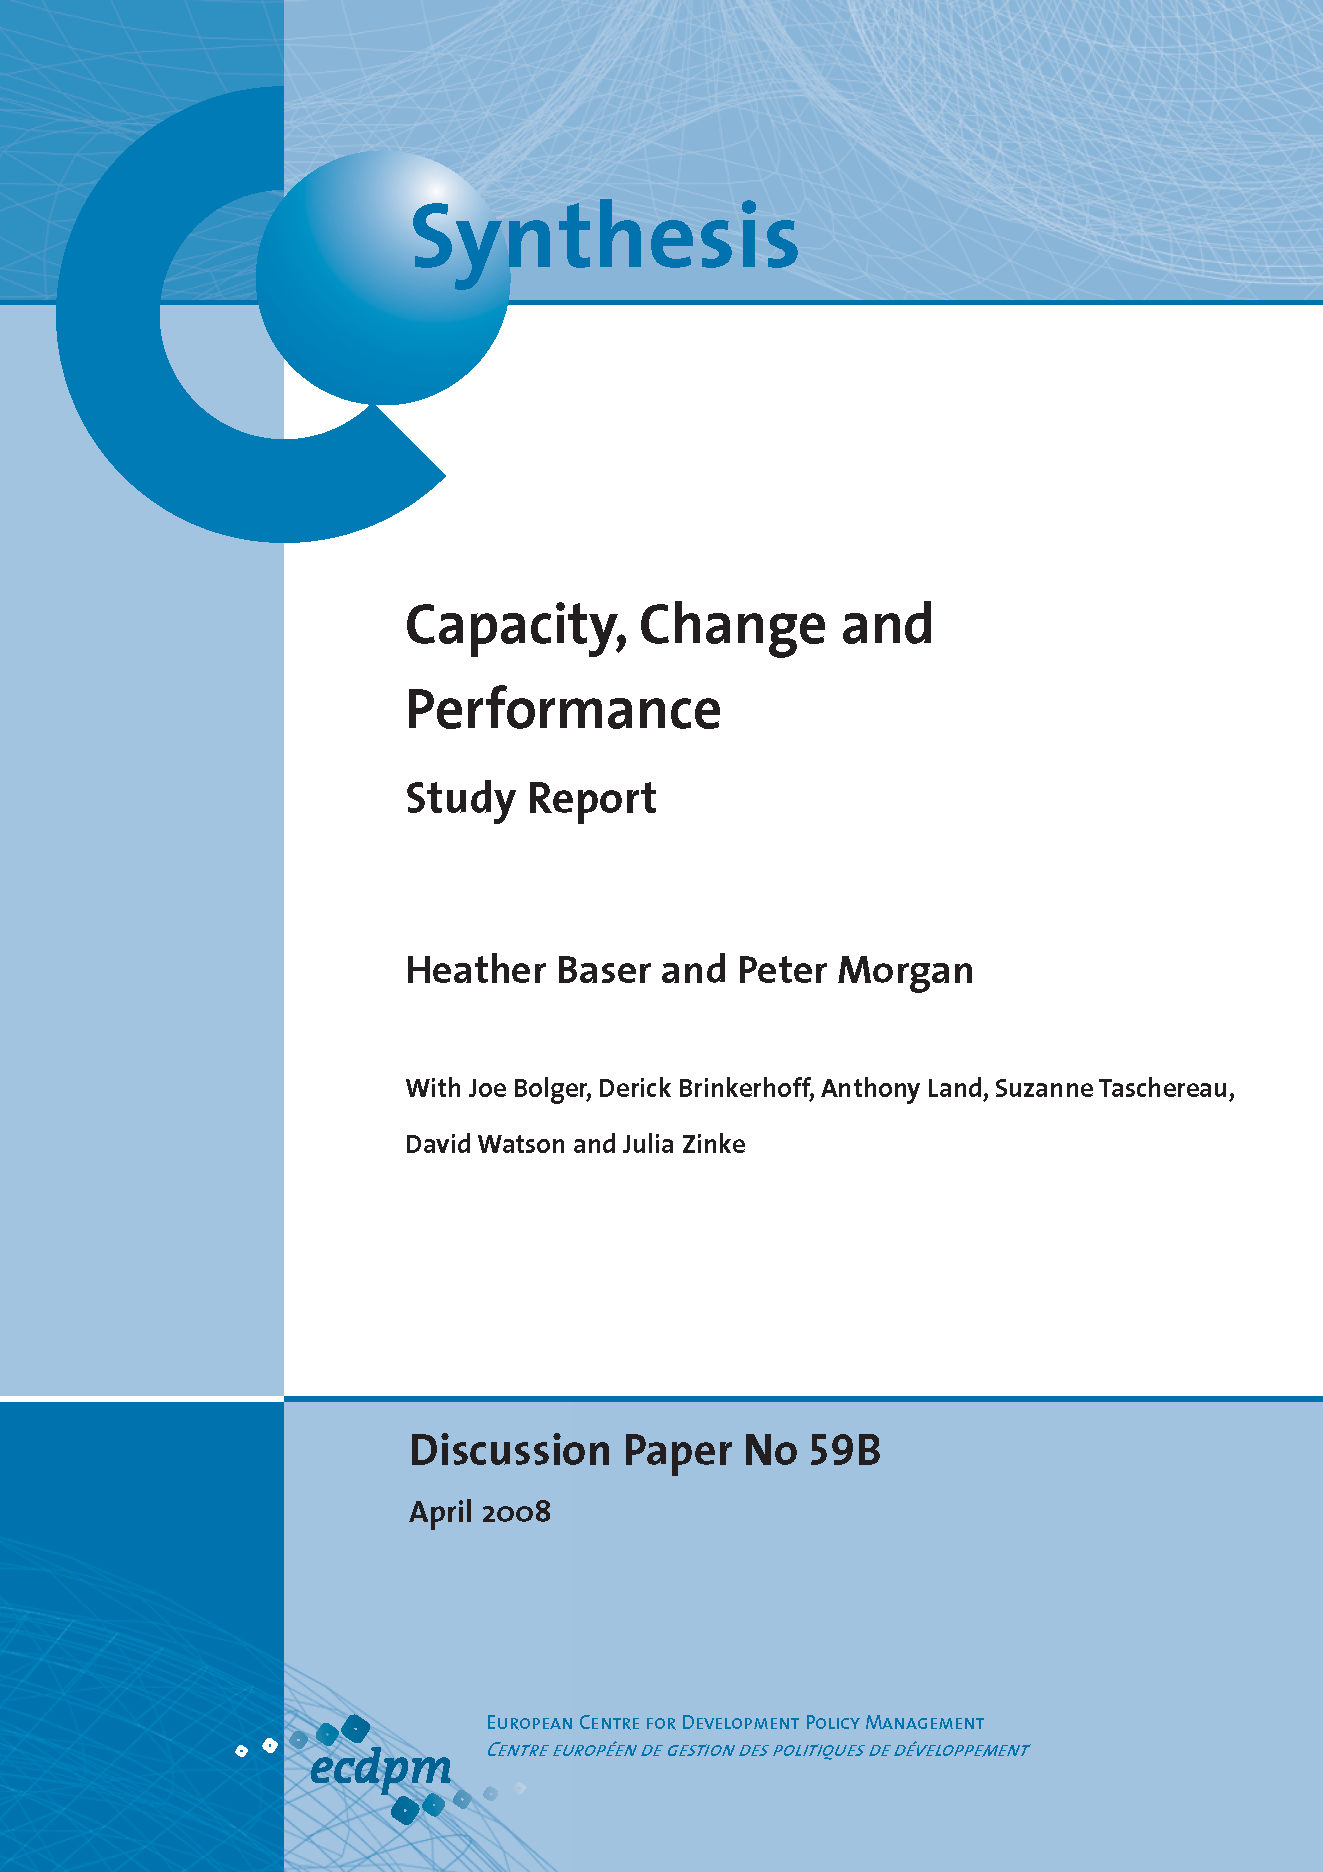 Evaluating the Performance of an Organization | Better